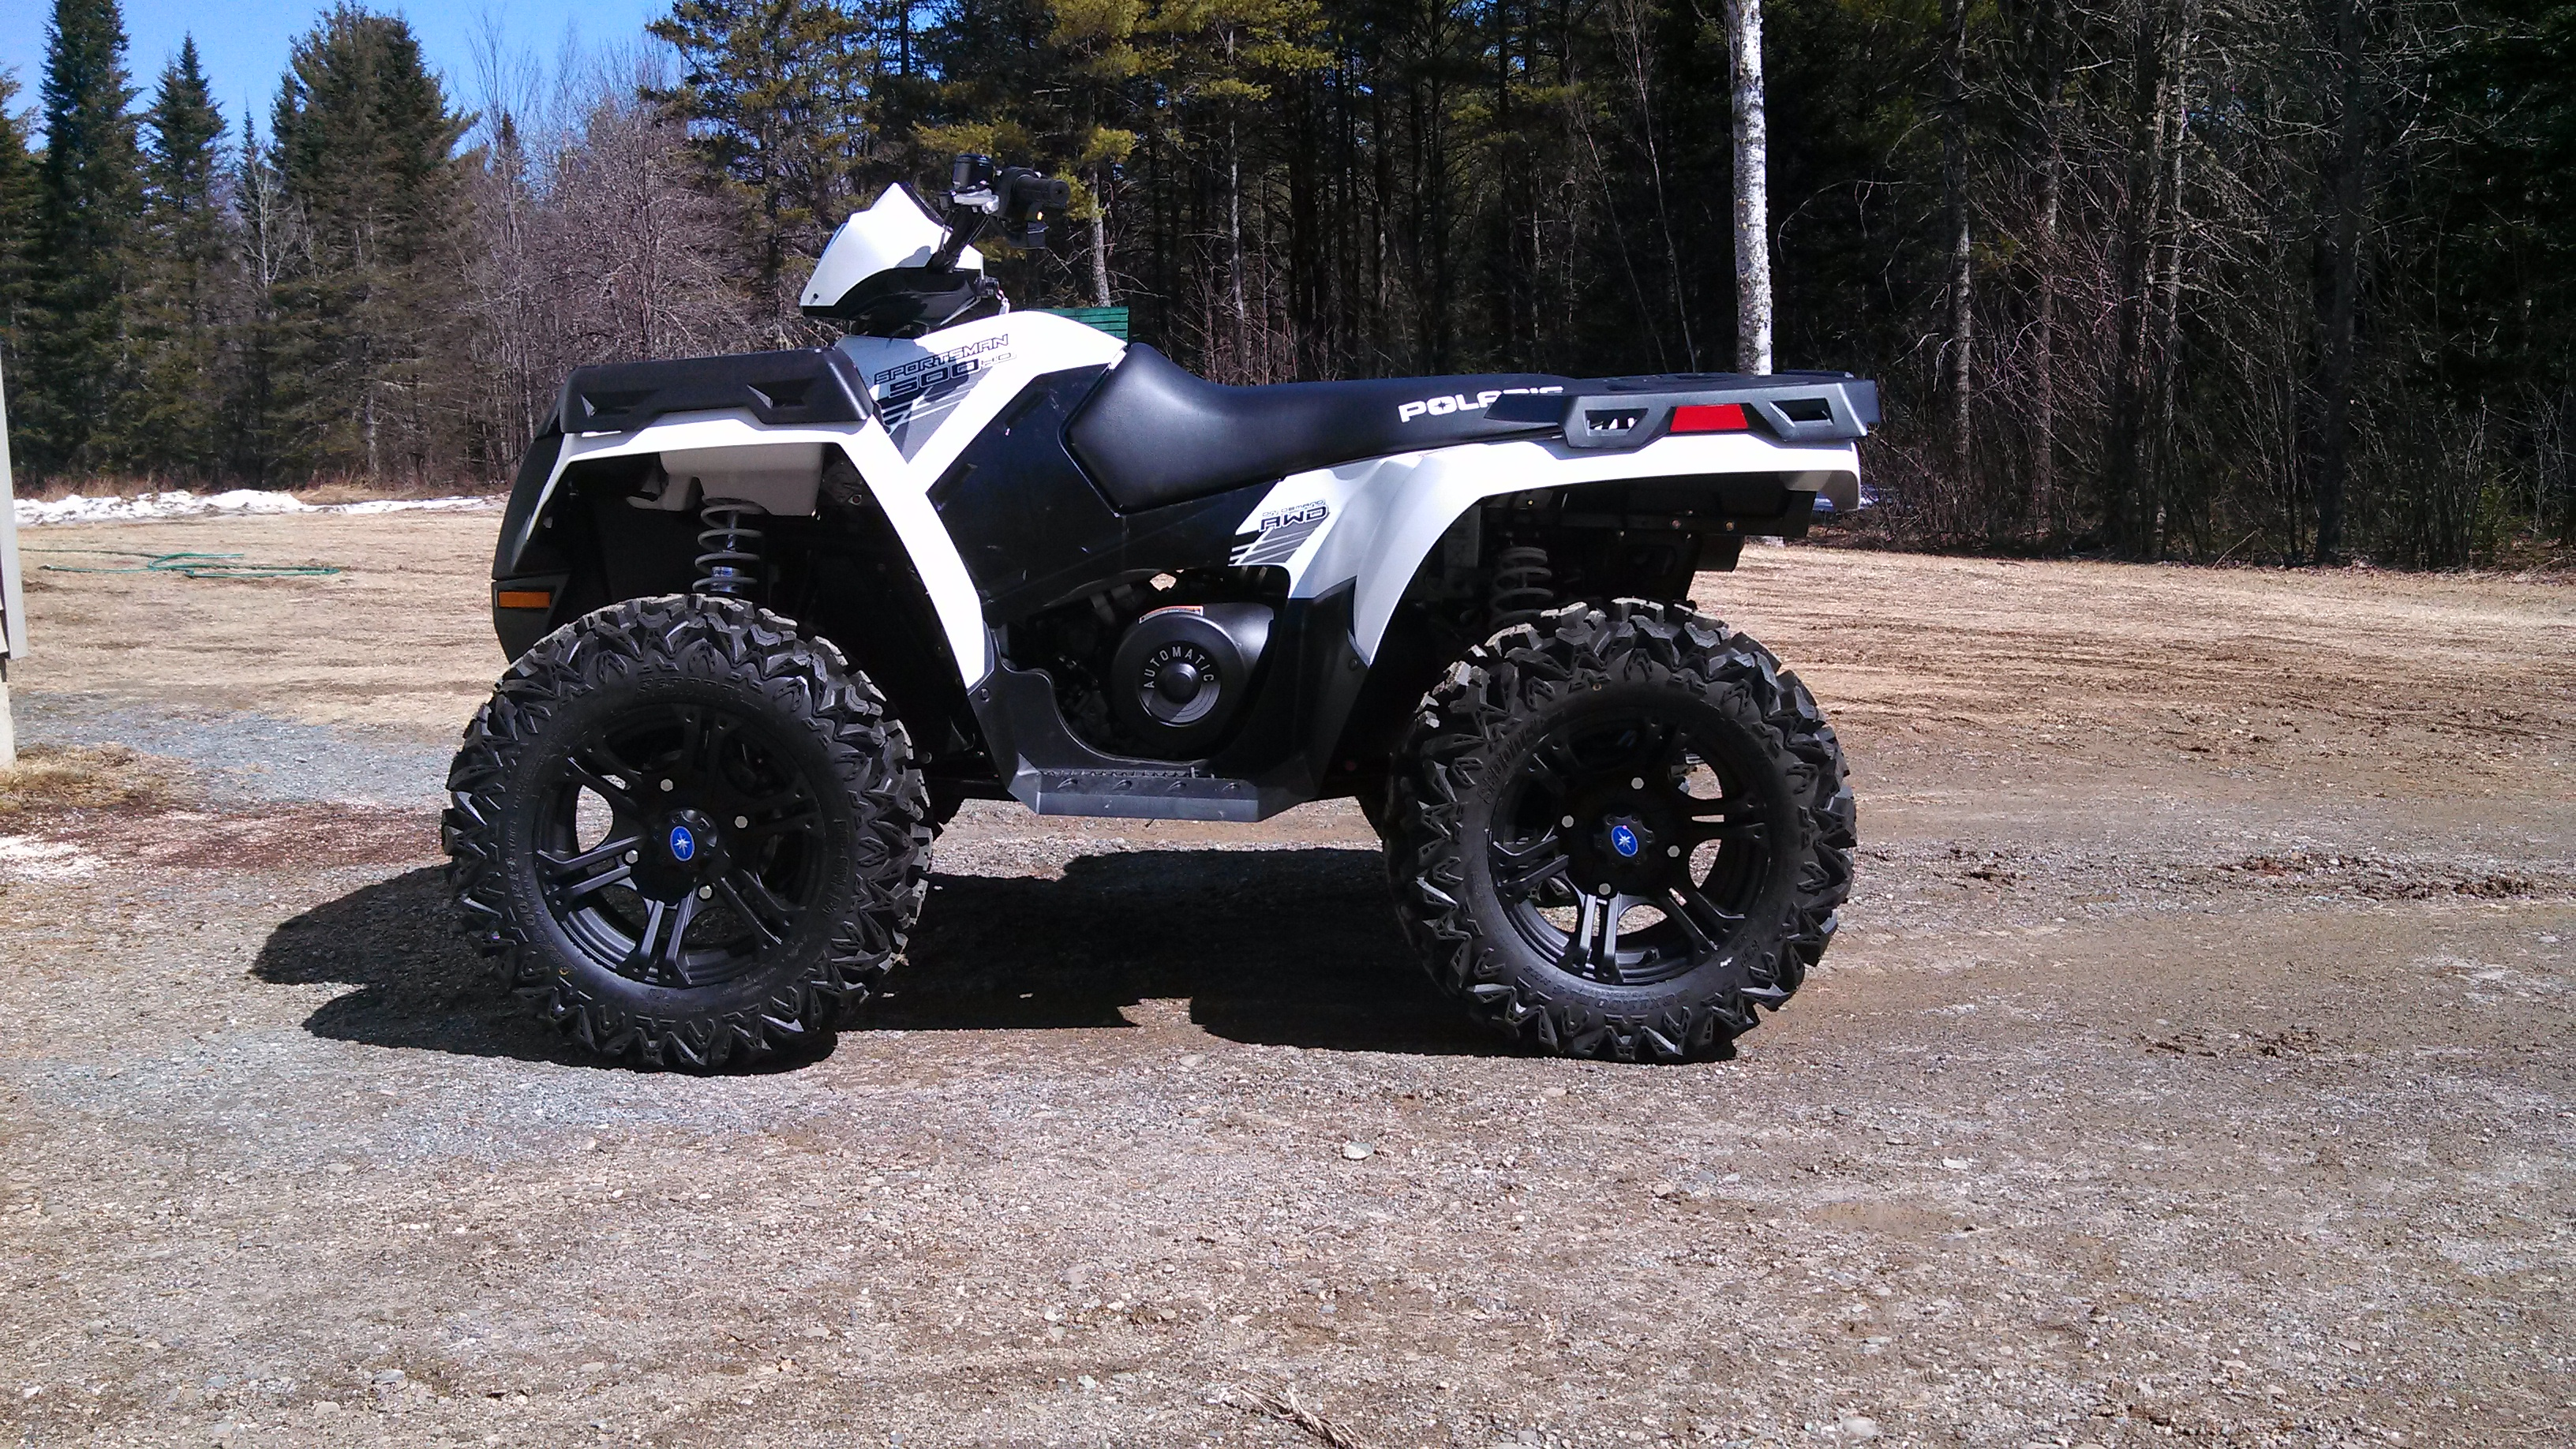 2005 Polaris Sportsman 500 - 2019-2020 New Upcoming Cars by